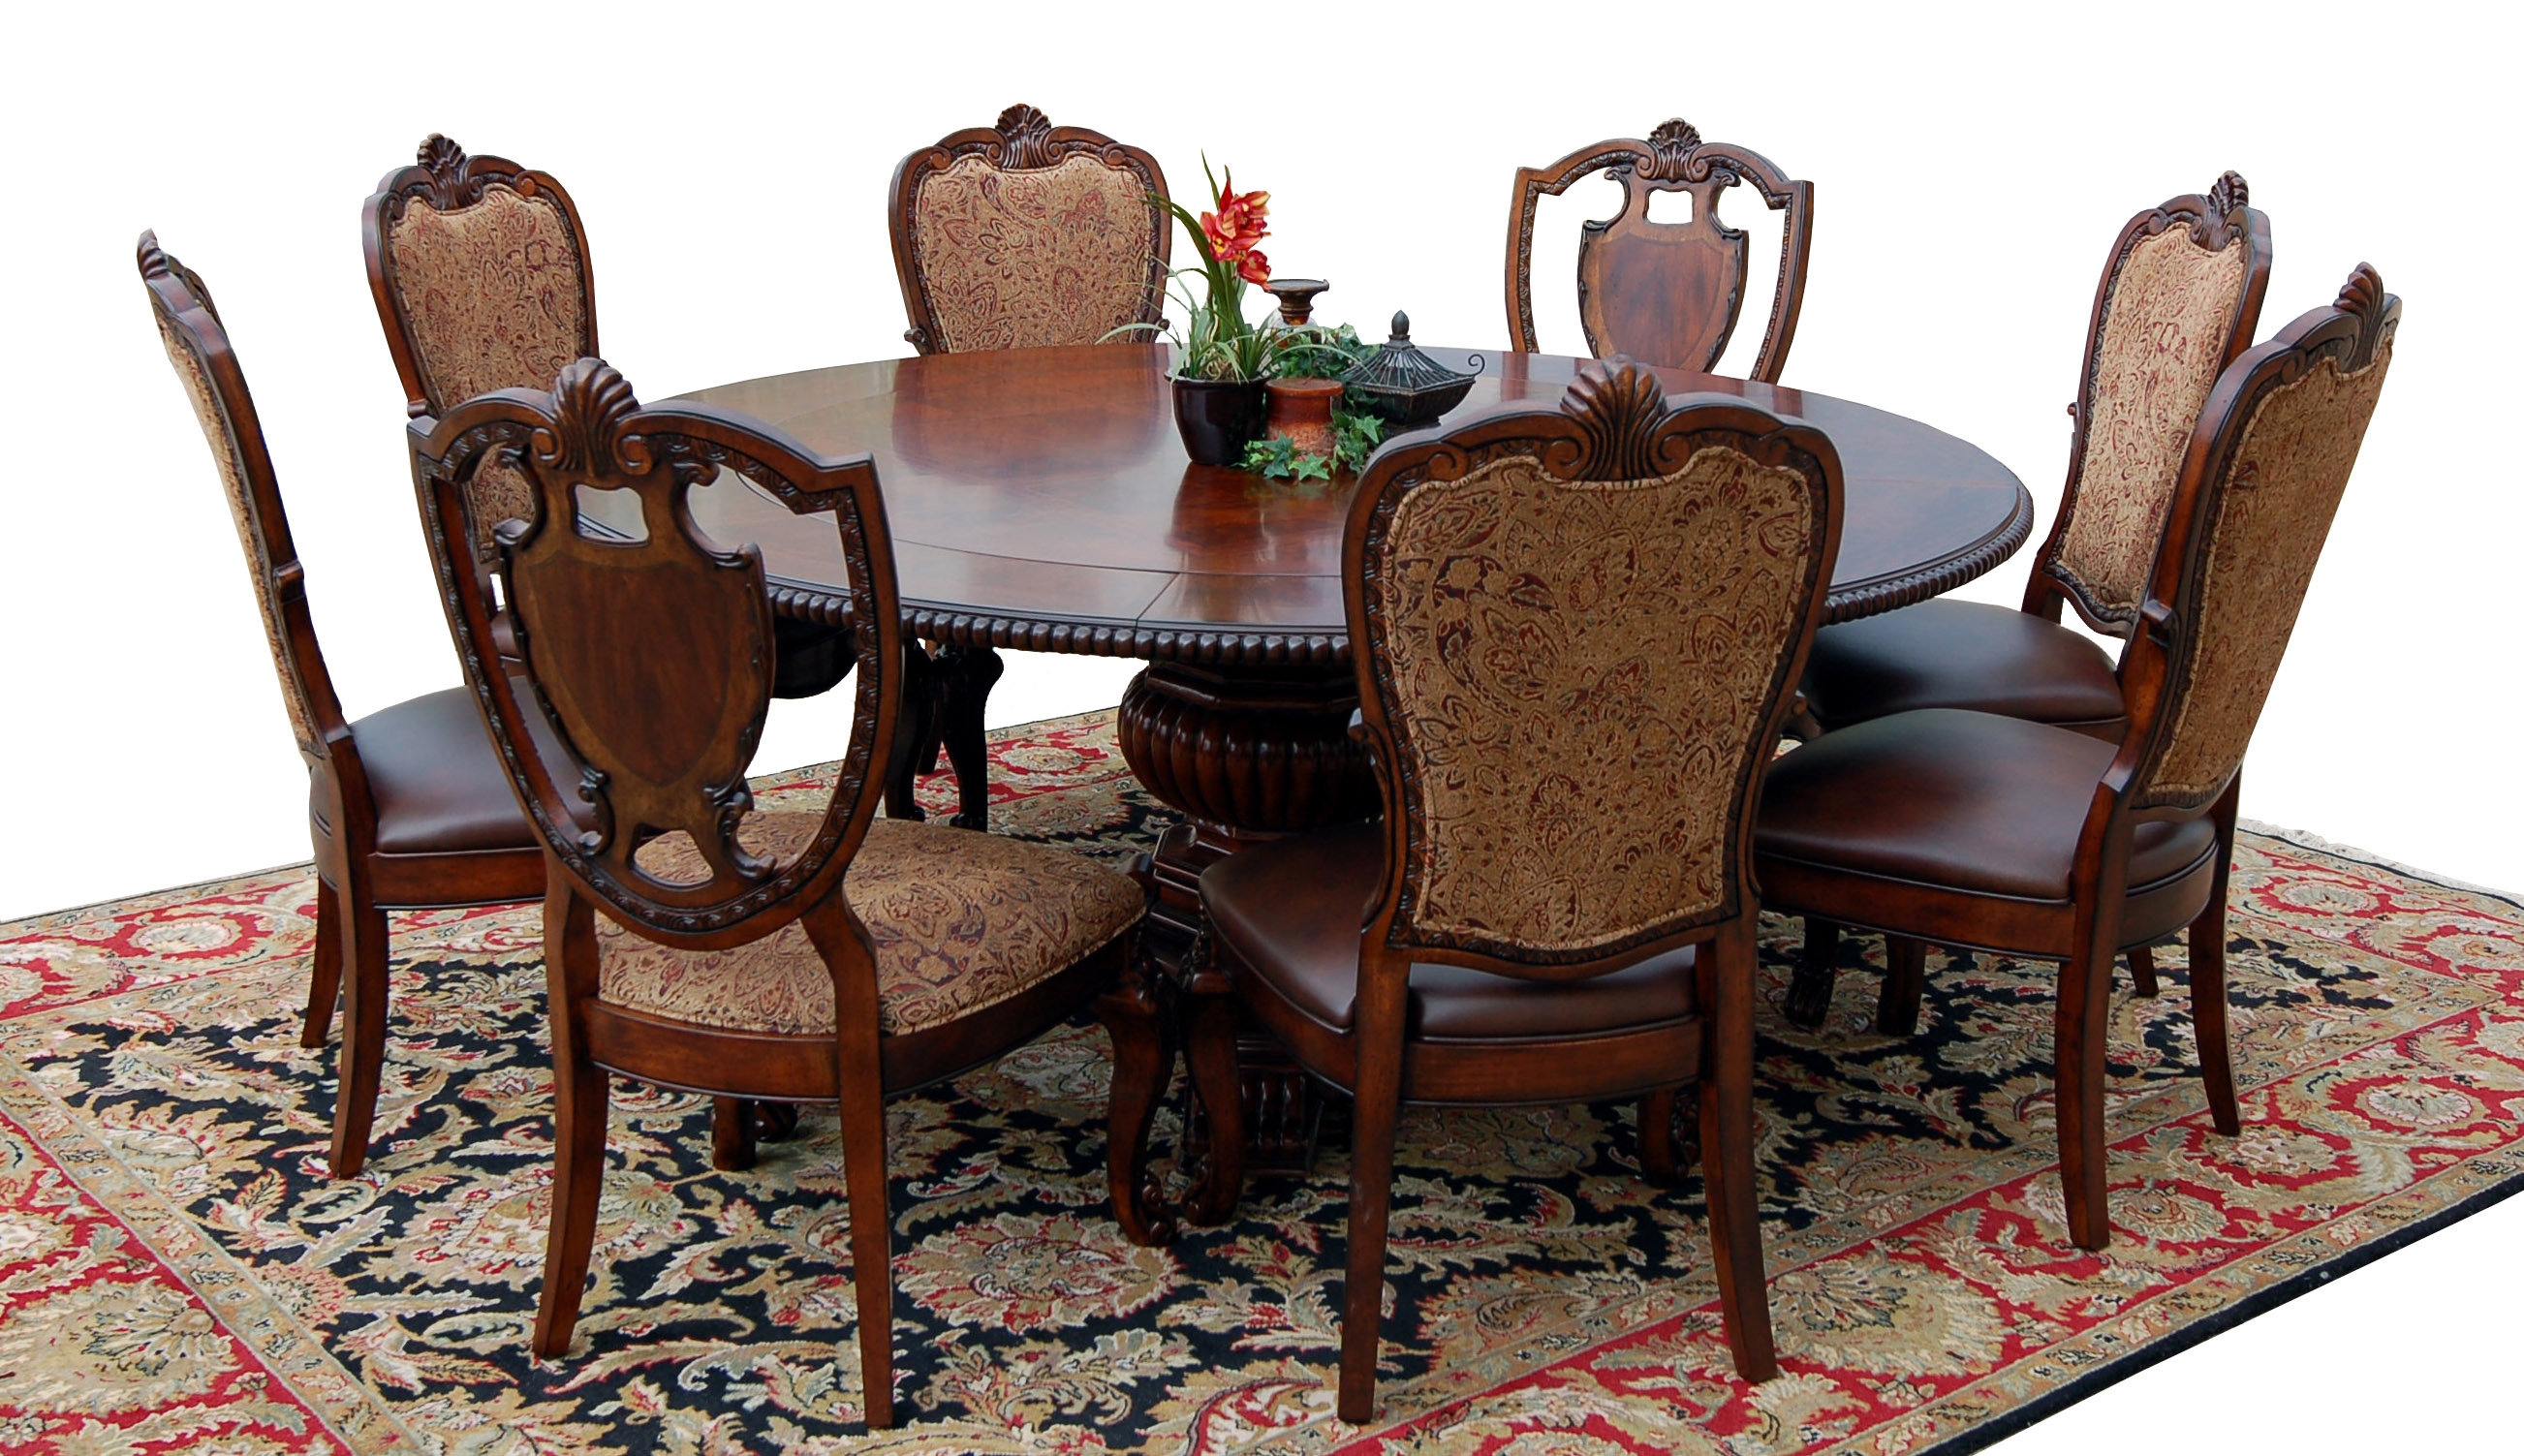 Round 9 Piece Old World Dining Table amp Chair Set Cherry  : fullview1exp from www.ebay.com size 2605 x 1503 jpeg 839kB